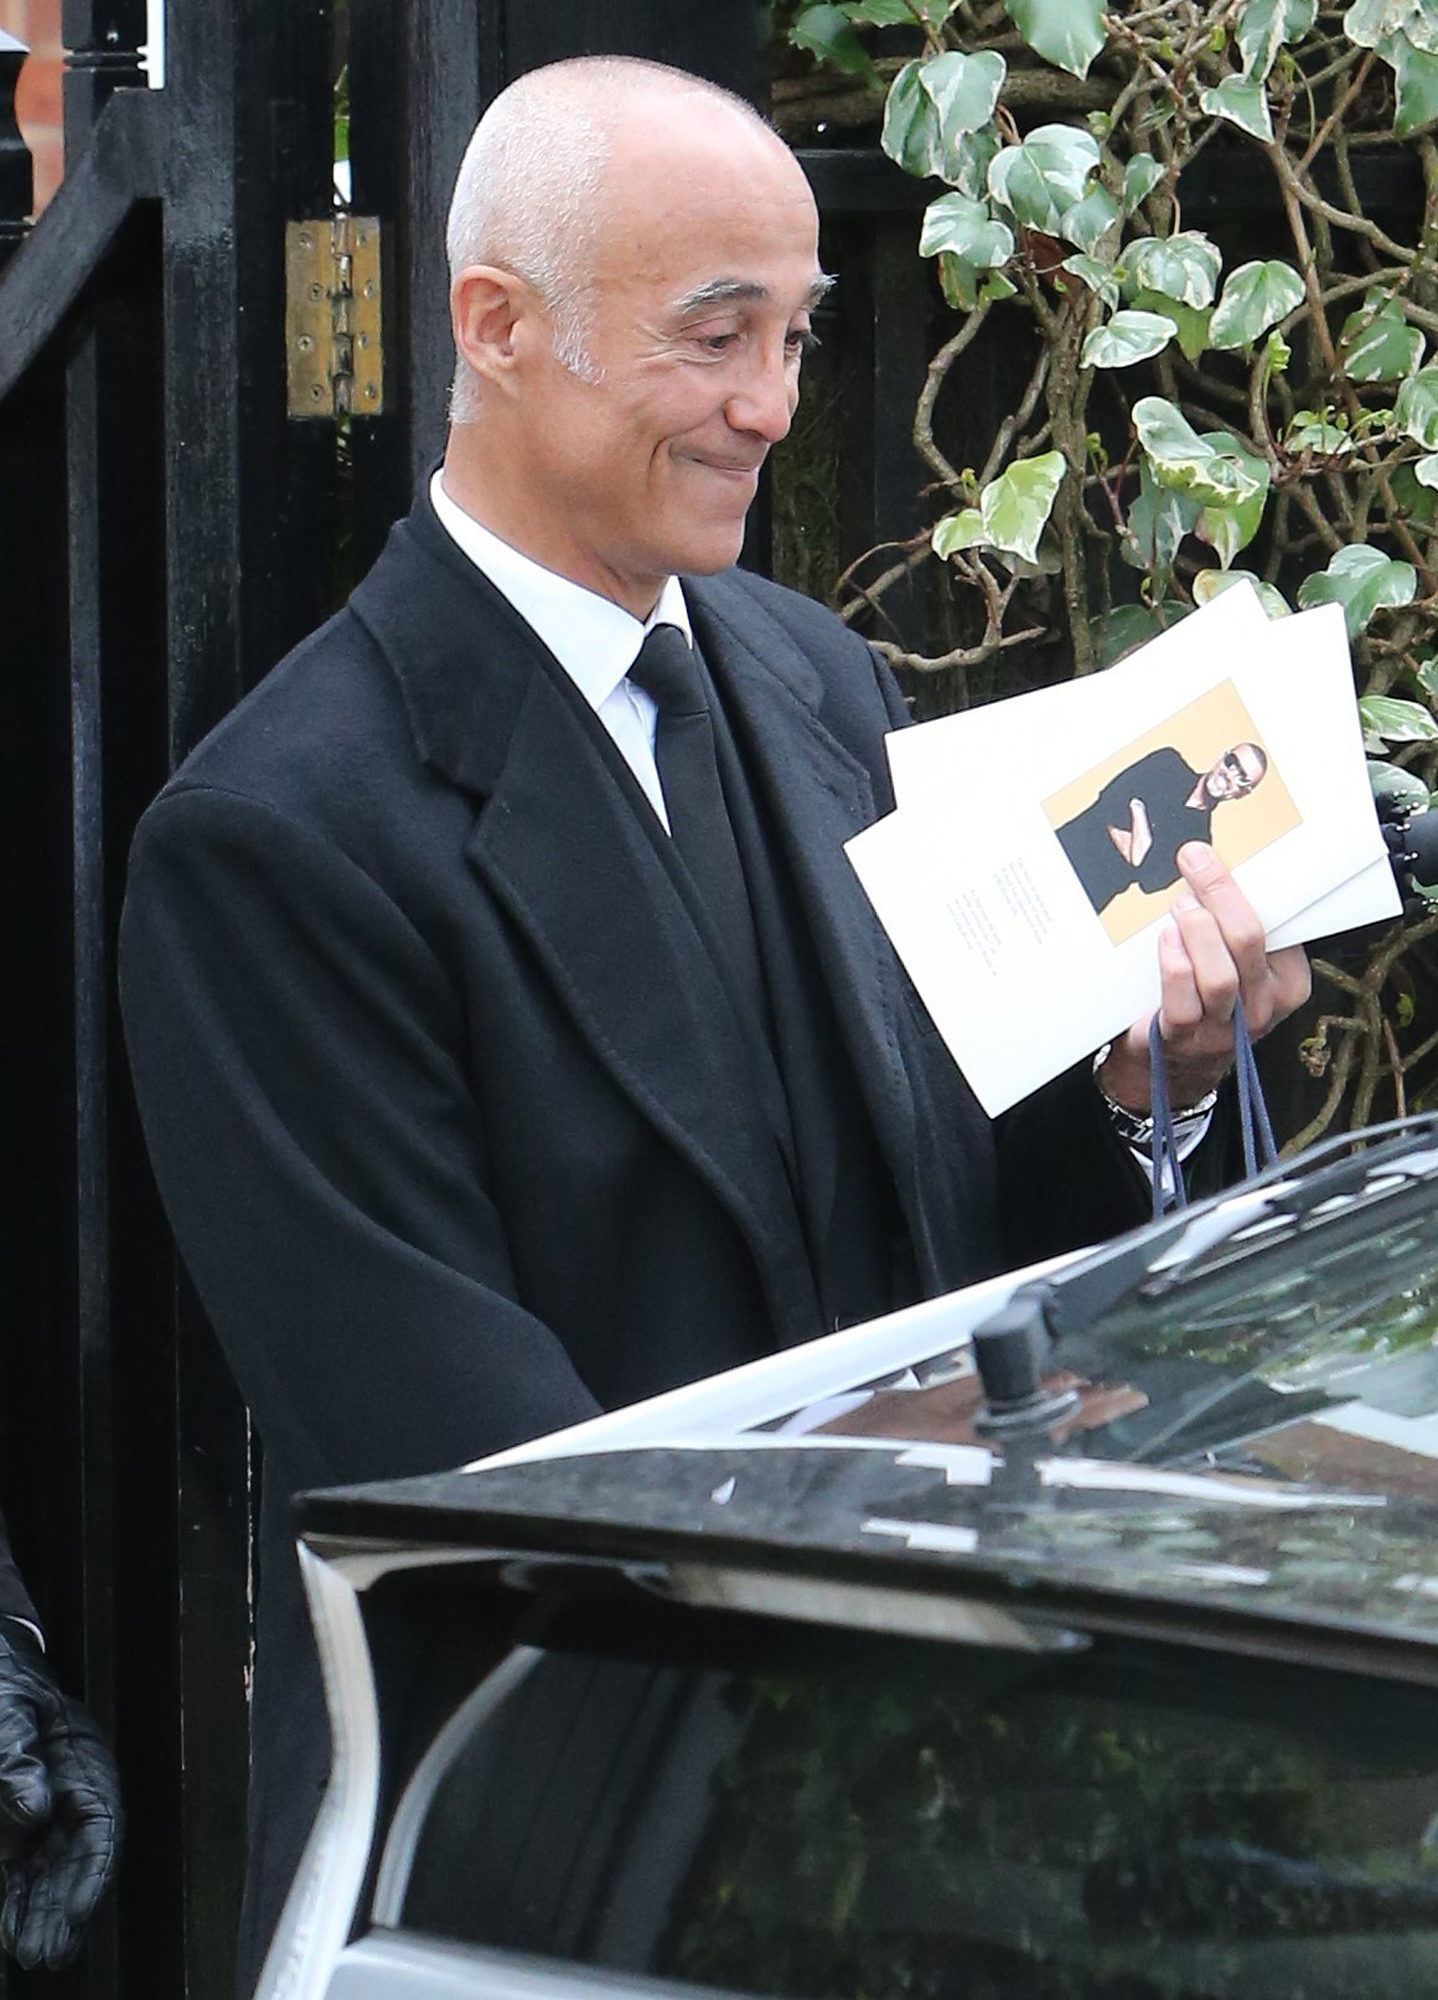 Martin Kemp and Andrew Ridgeley are seen leaving George Michael's funeral reception